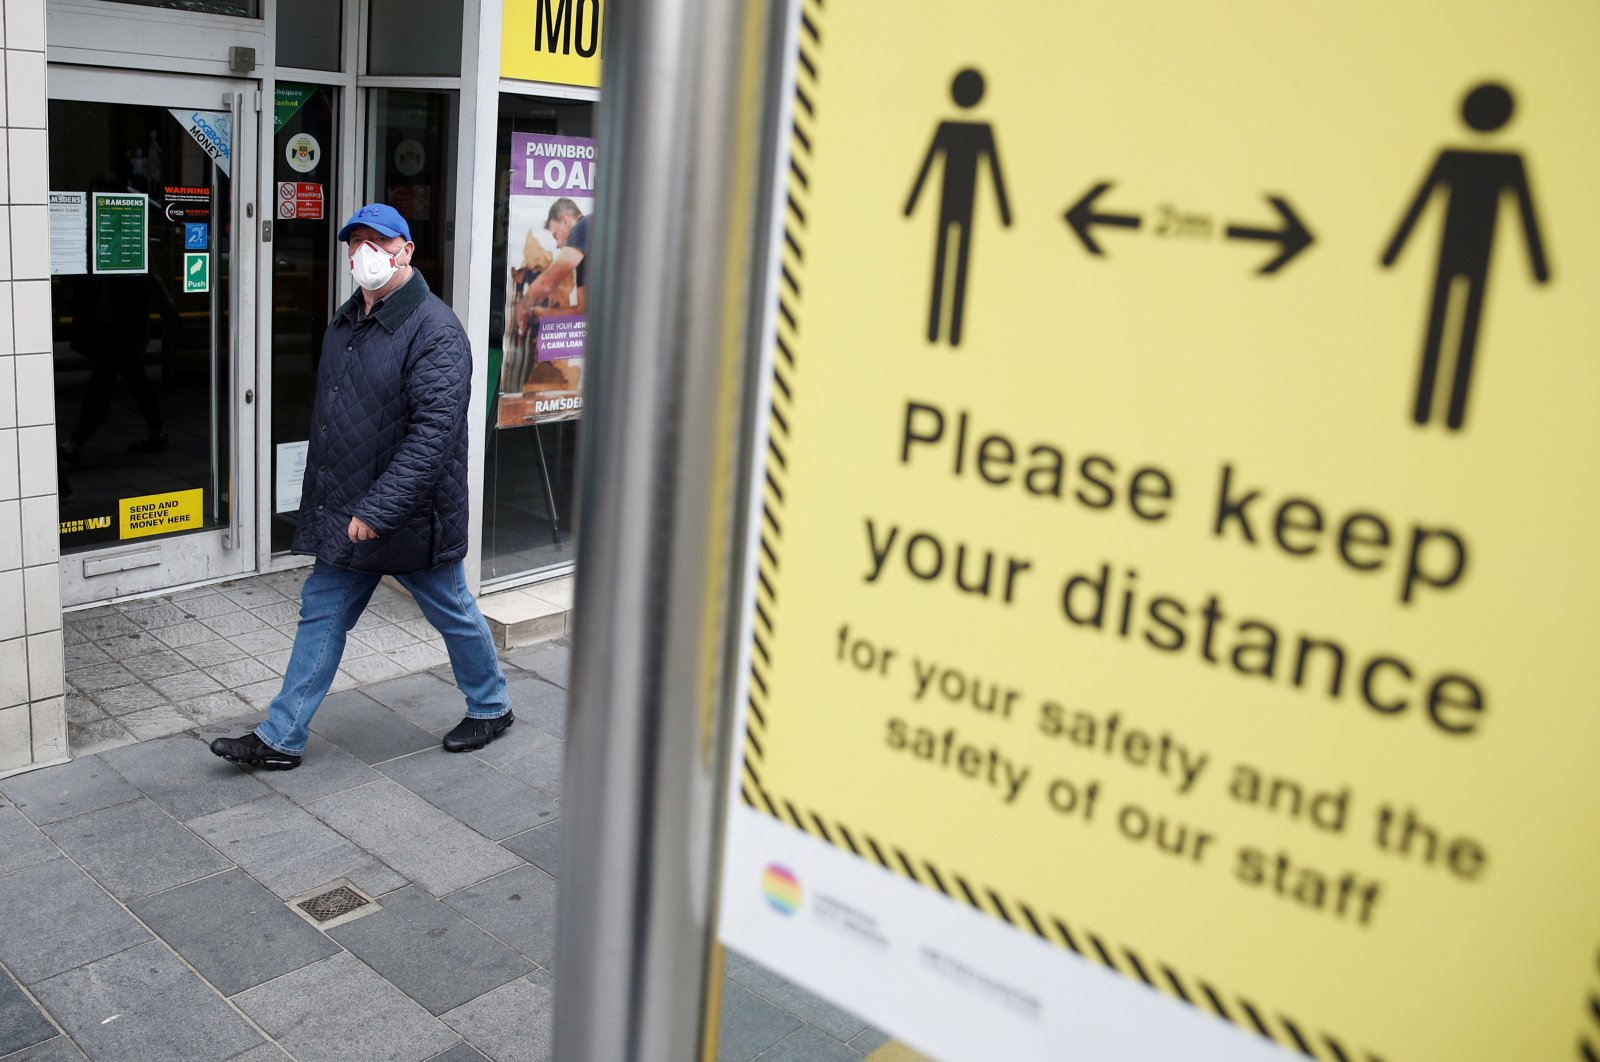 A man wearing a face mask walks by a social distance sign in Liverpool, following the outbreak of the coronavirus disease (COVID-19), Liverpool, Britain, May 26, 2020. (Reuters Photo)